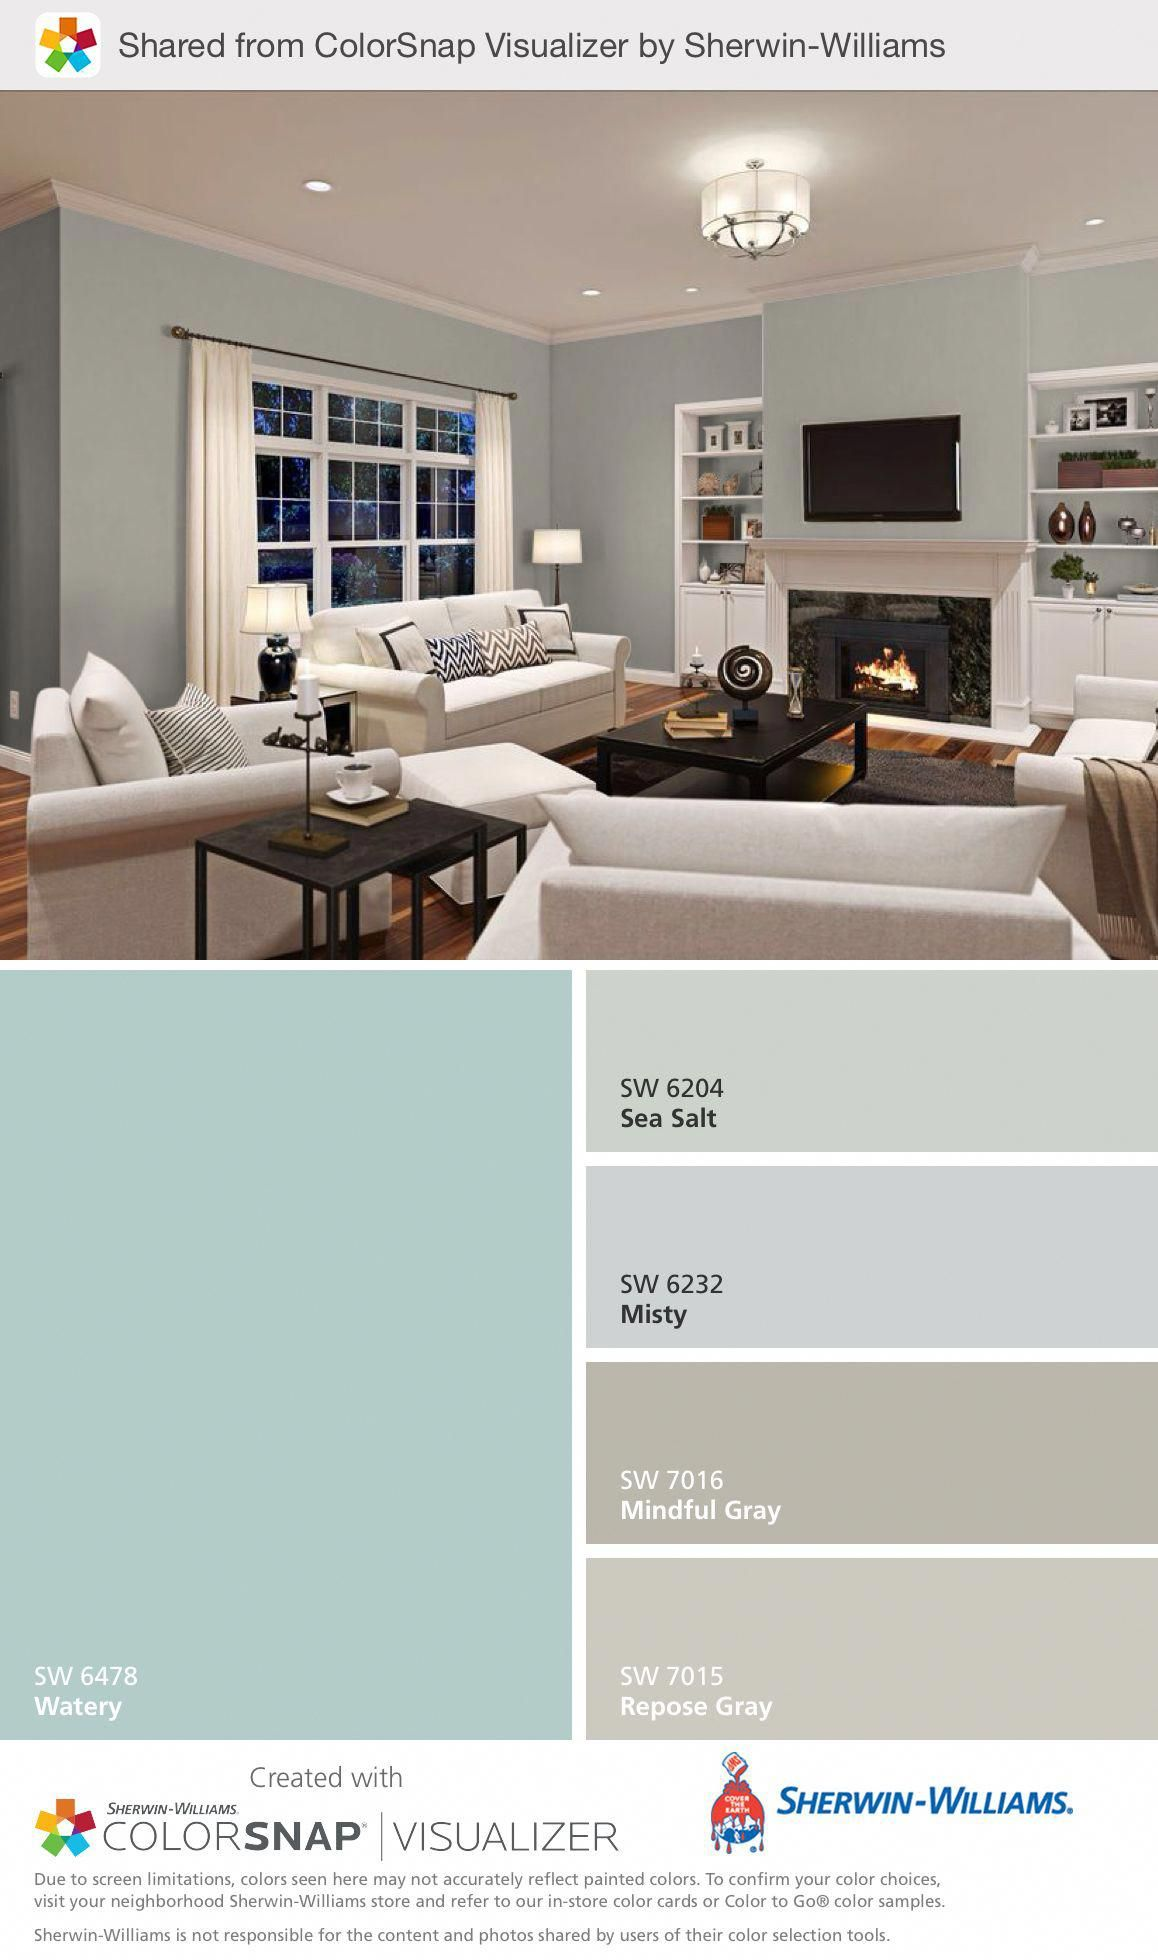 Coastal Living Rooms Puctures Coastallivingrooms Paint Colors For Home Home New Homes Beach paint colors for living room